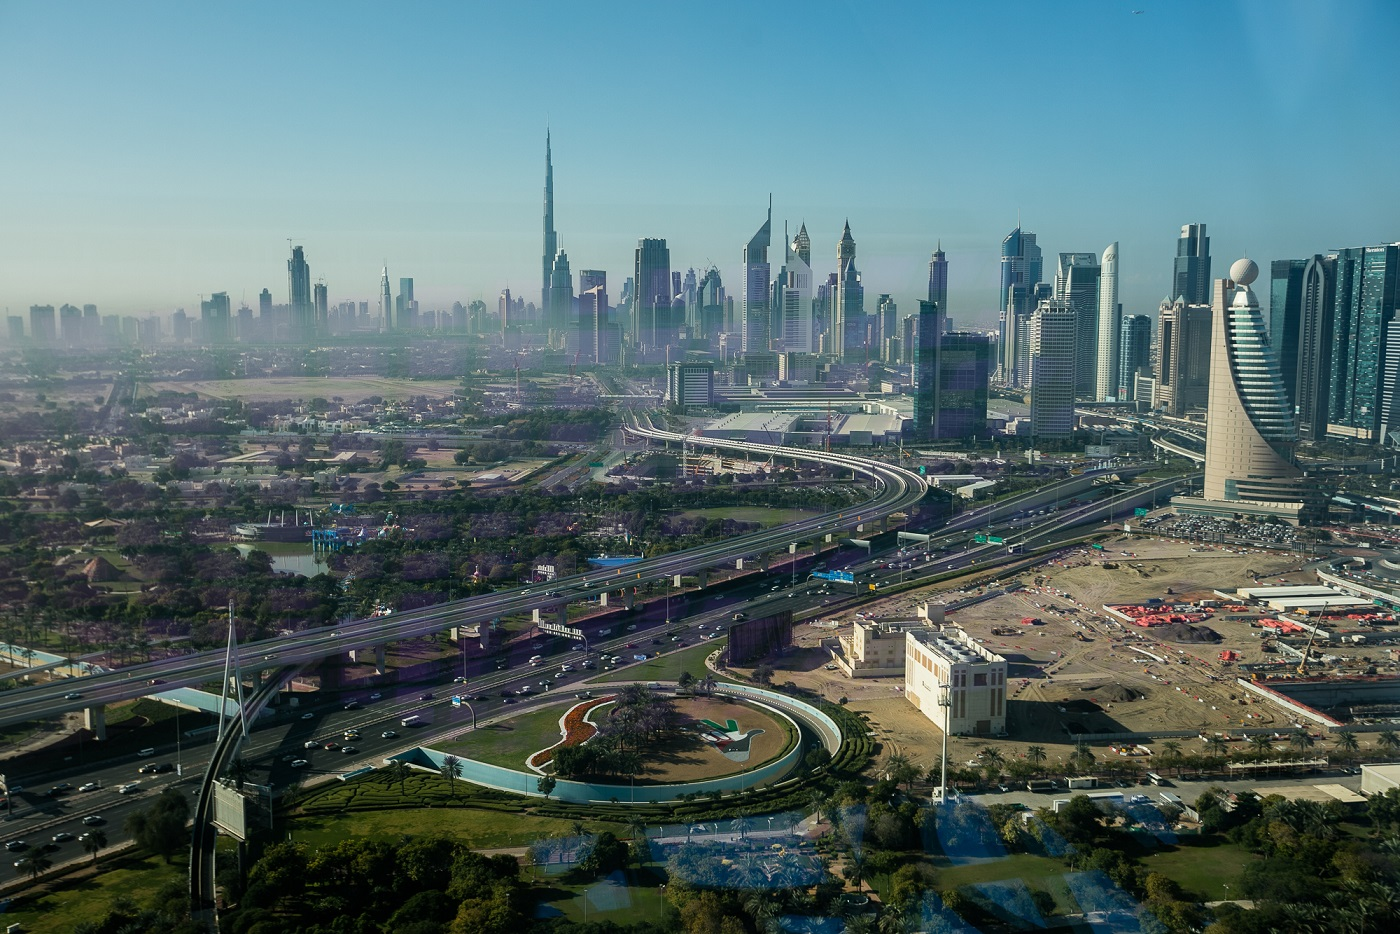 Dubai is leading the way for hospitality across the world, according to a report issued by Knight Frank